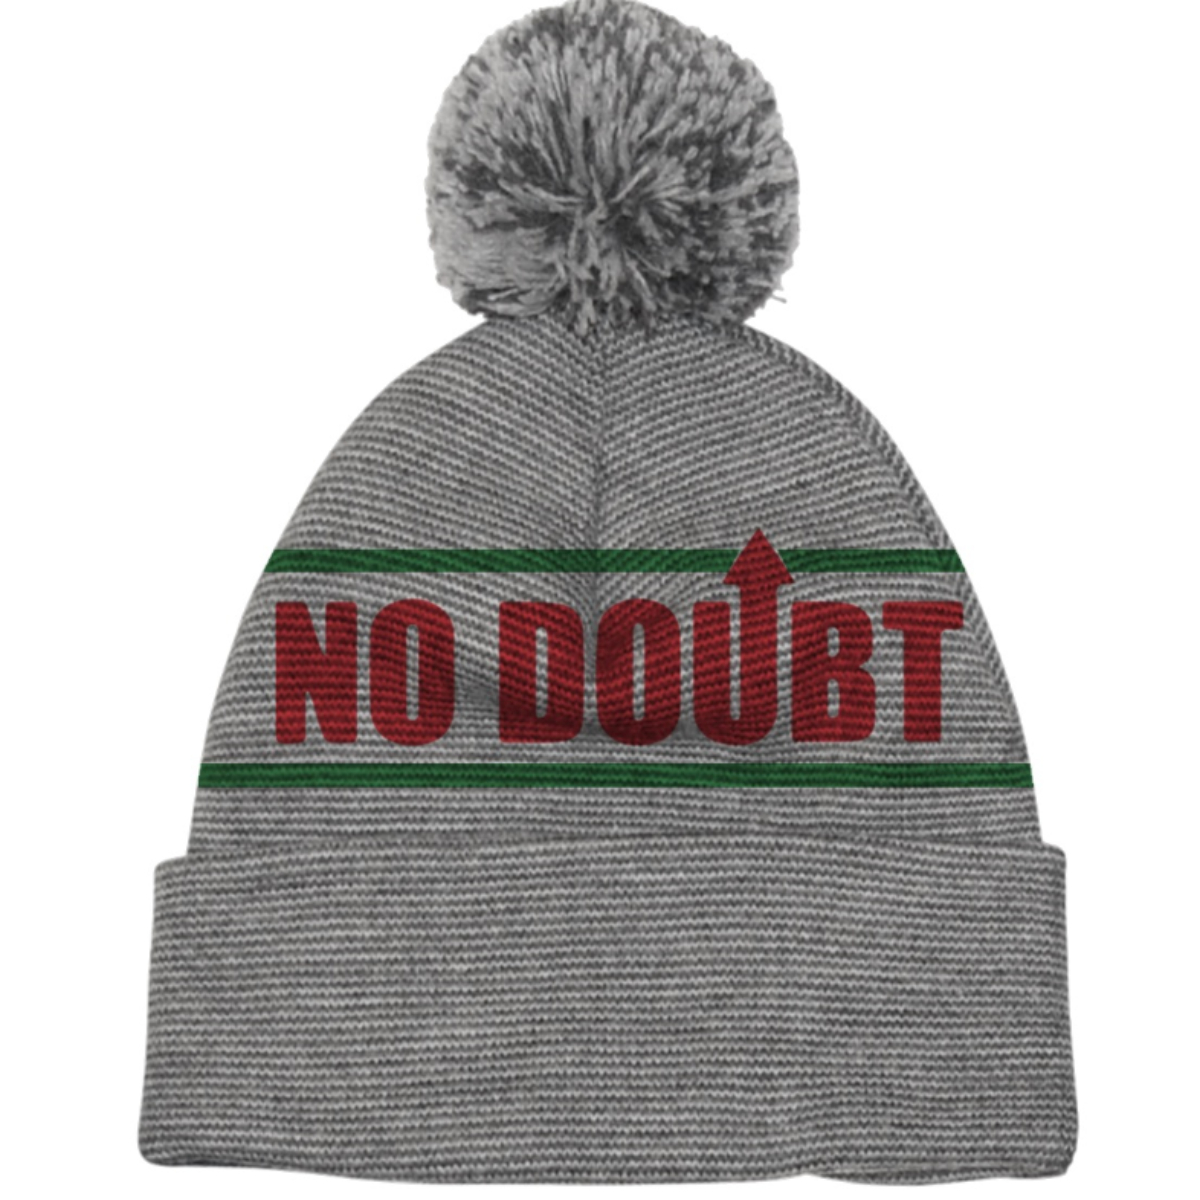 No Doubt Holiday Beanie